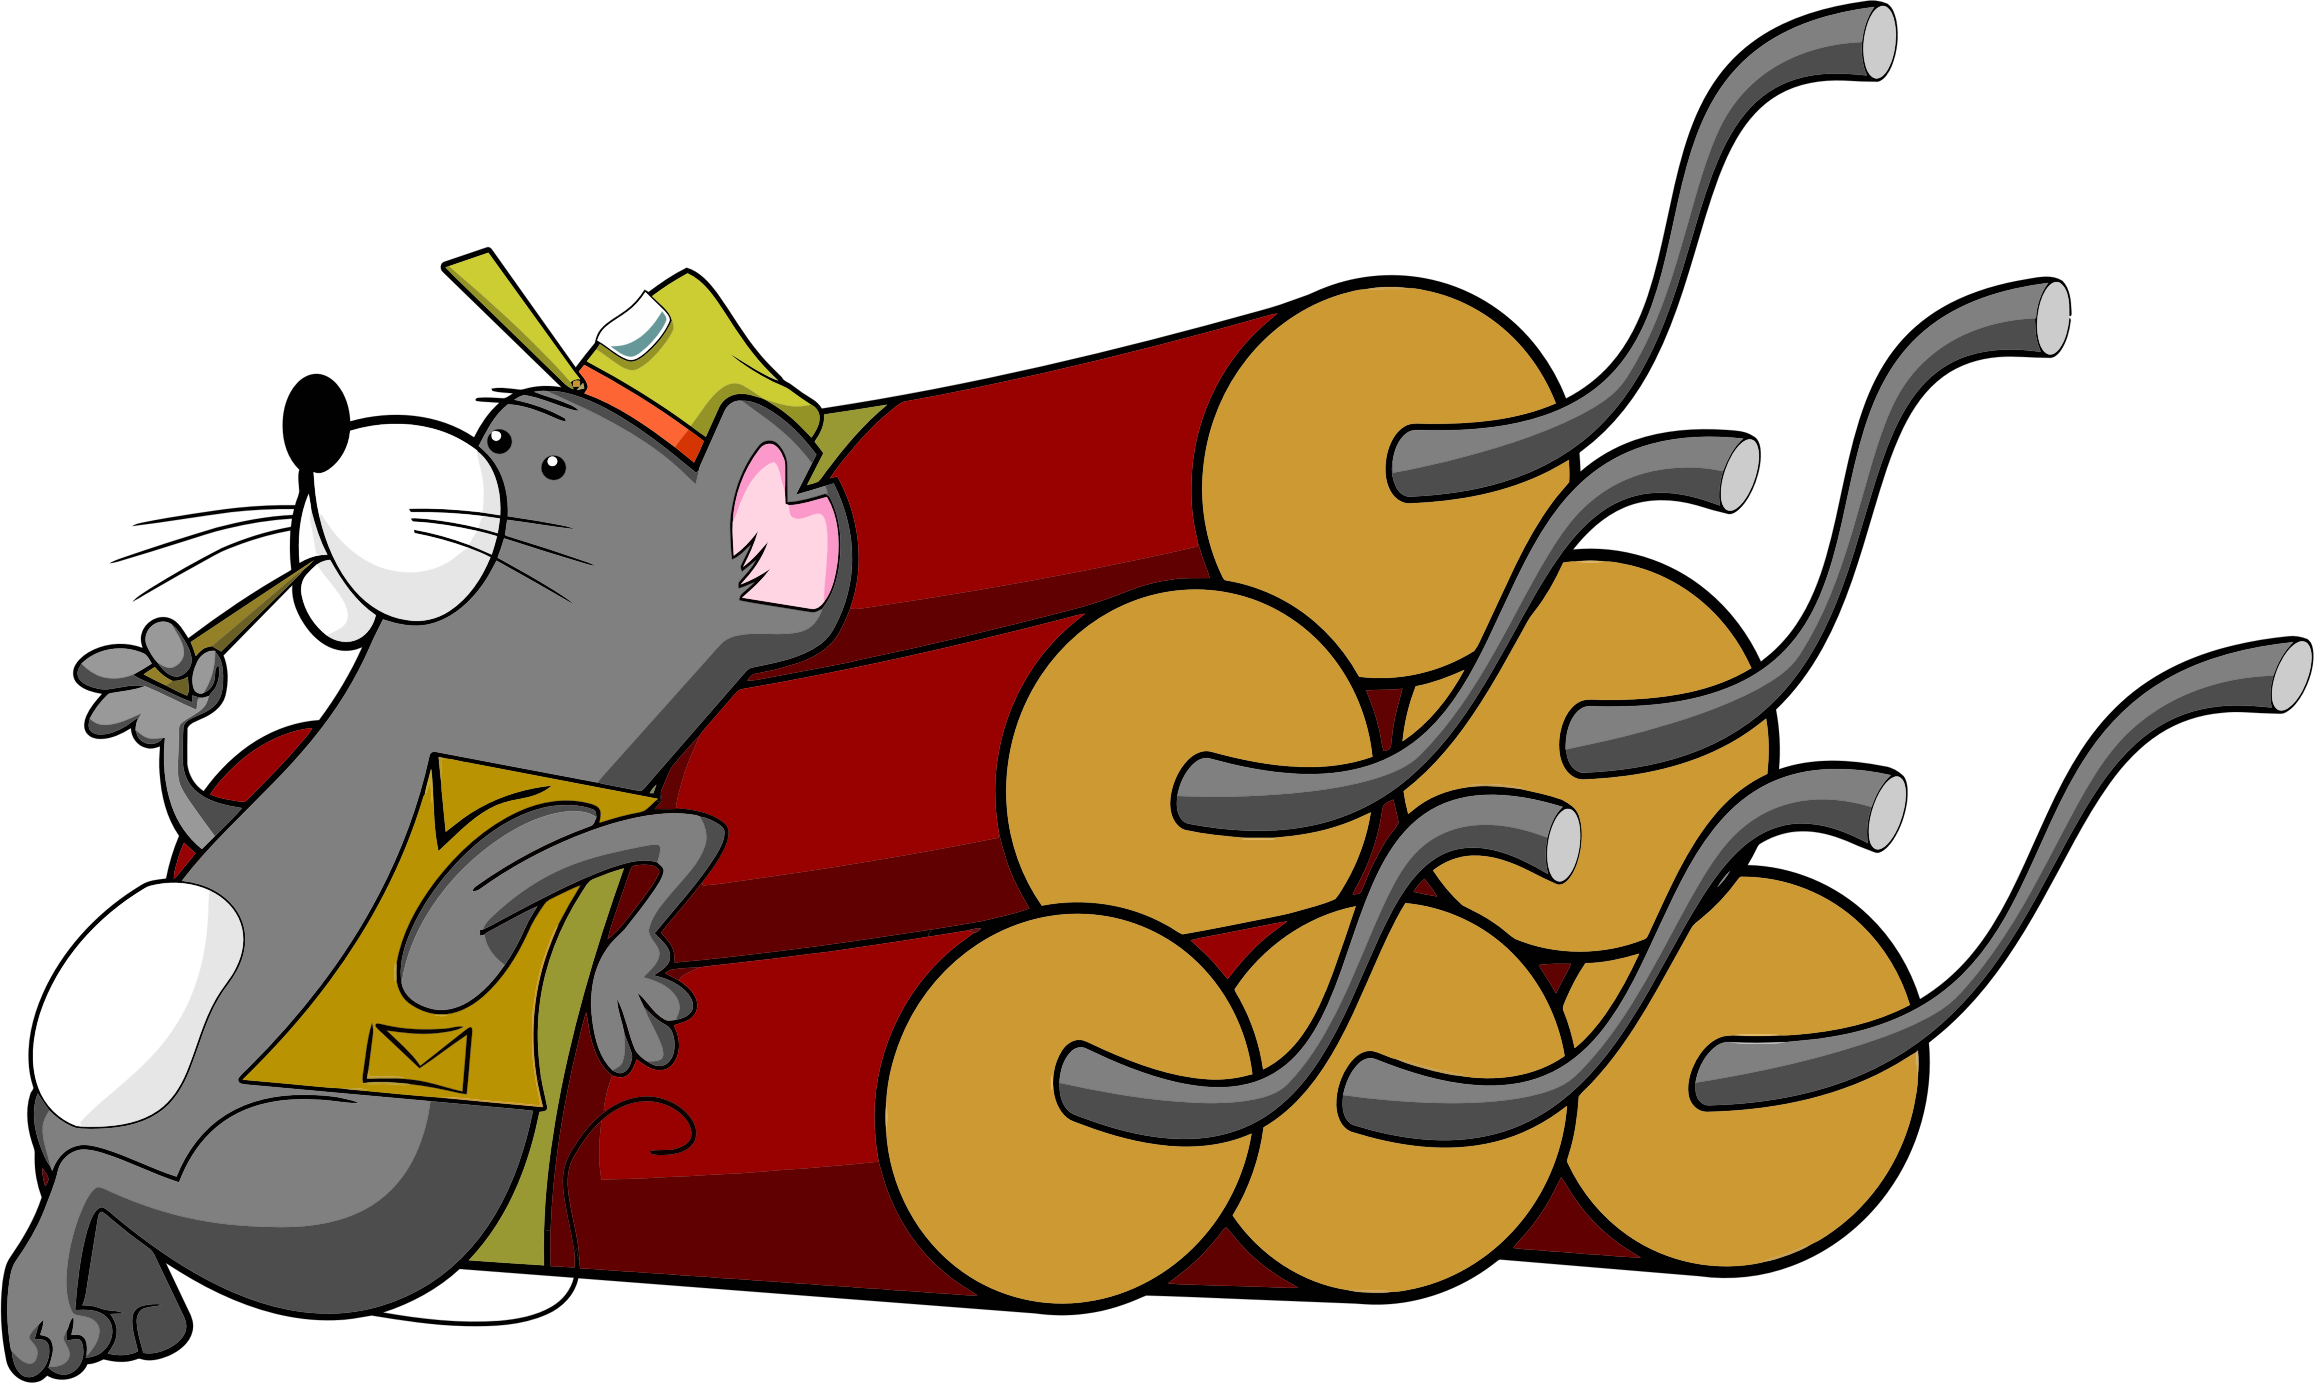 Explosion clipart dynomite. Gopher with dynamite big